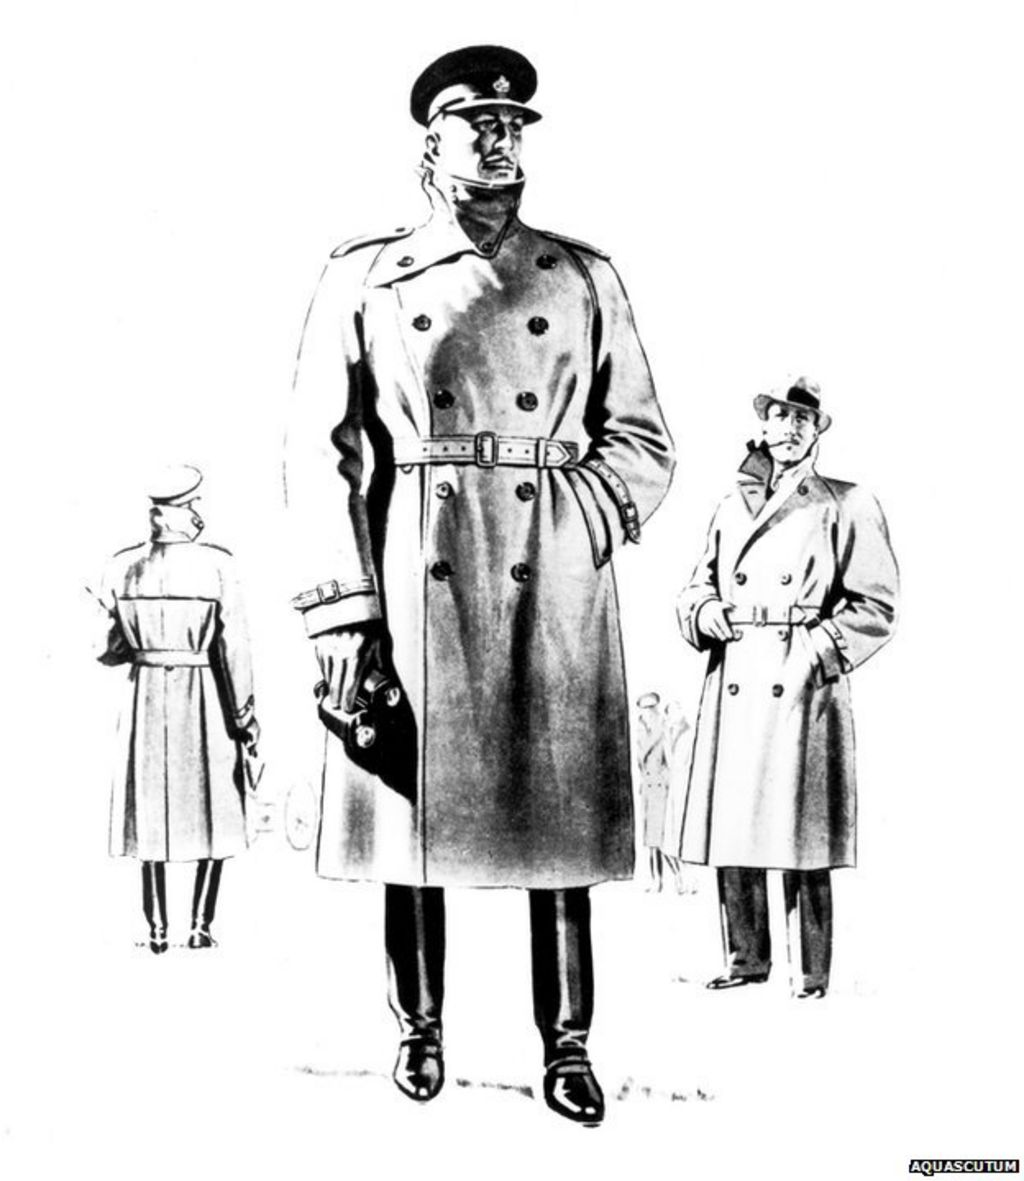 The Trench Coat S Forgotten Ww1 Roots Bbc News